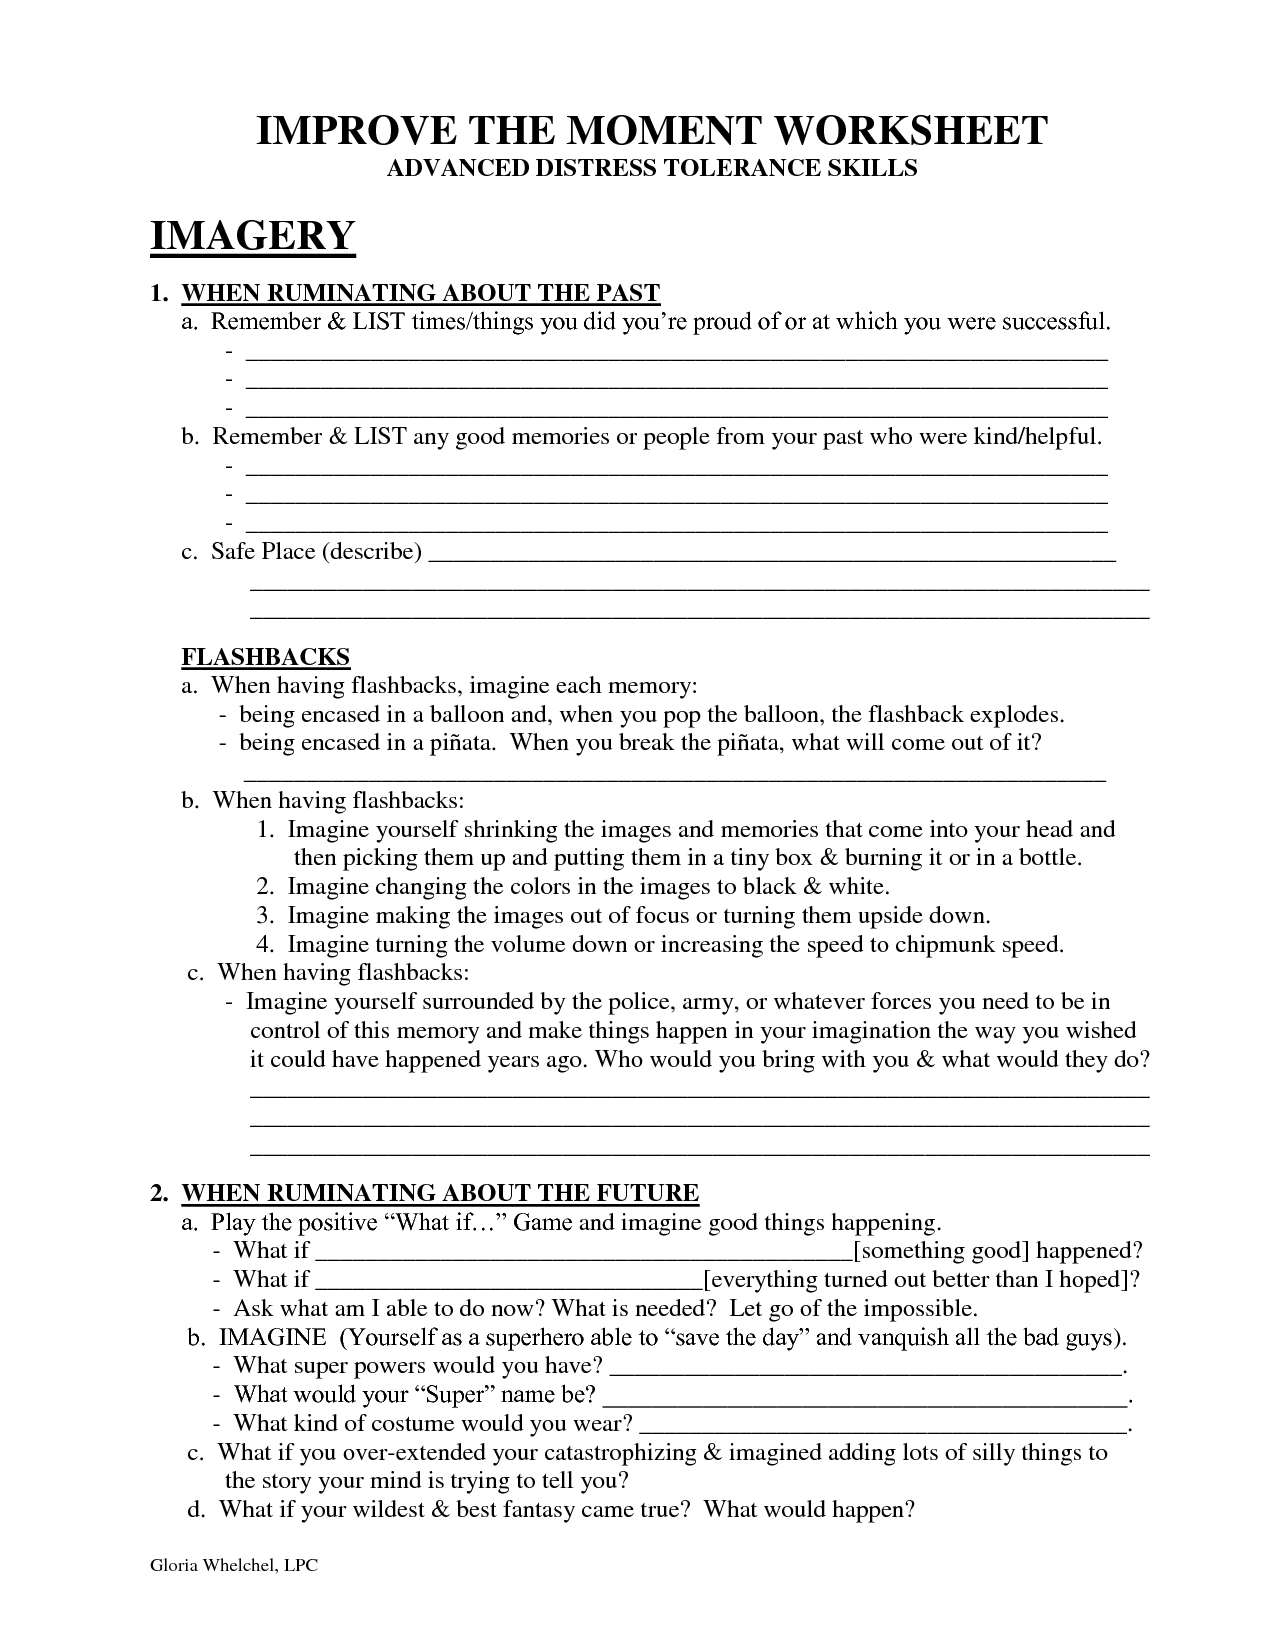 worksheet Reality Therapy Worksheets improve the moment worksheet dbt self help therapy parenting help